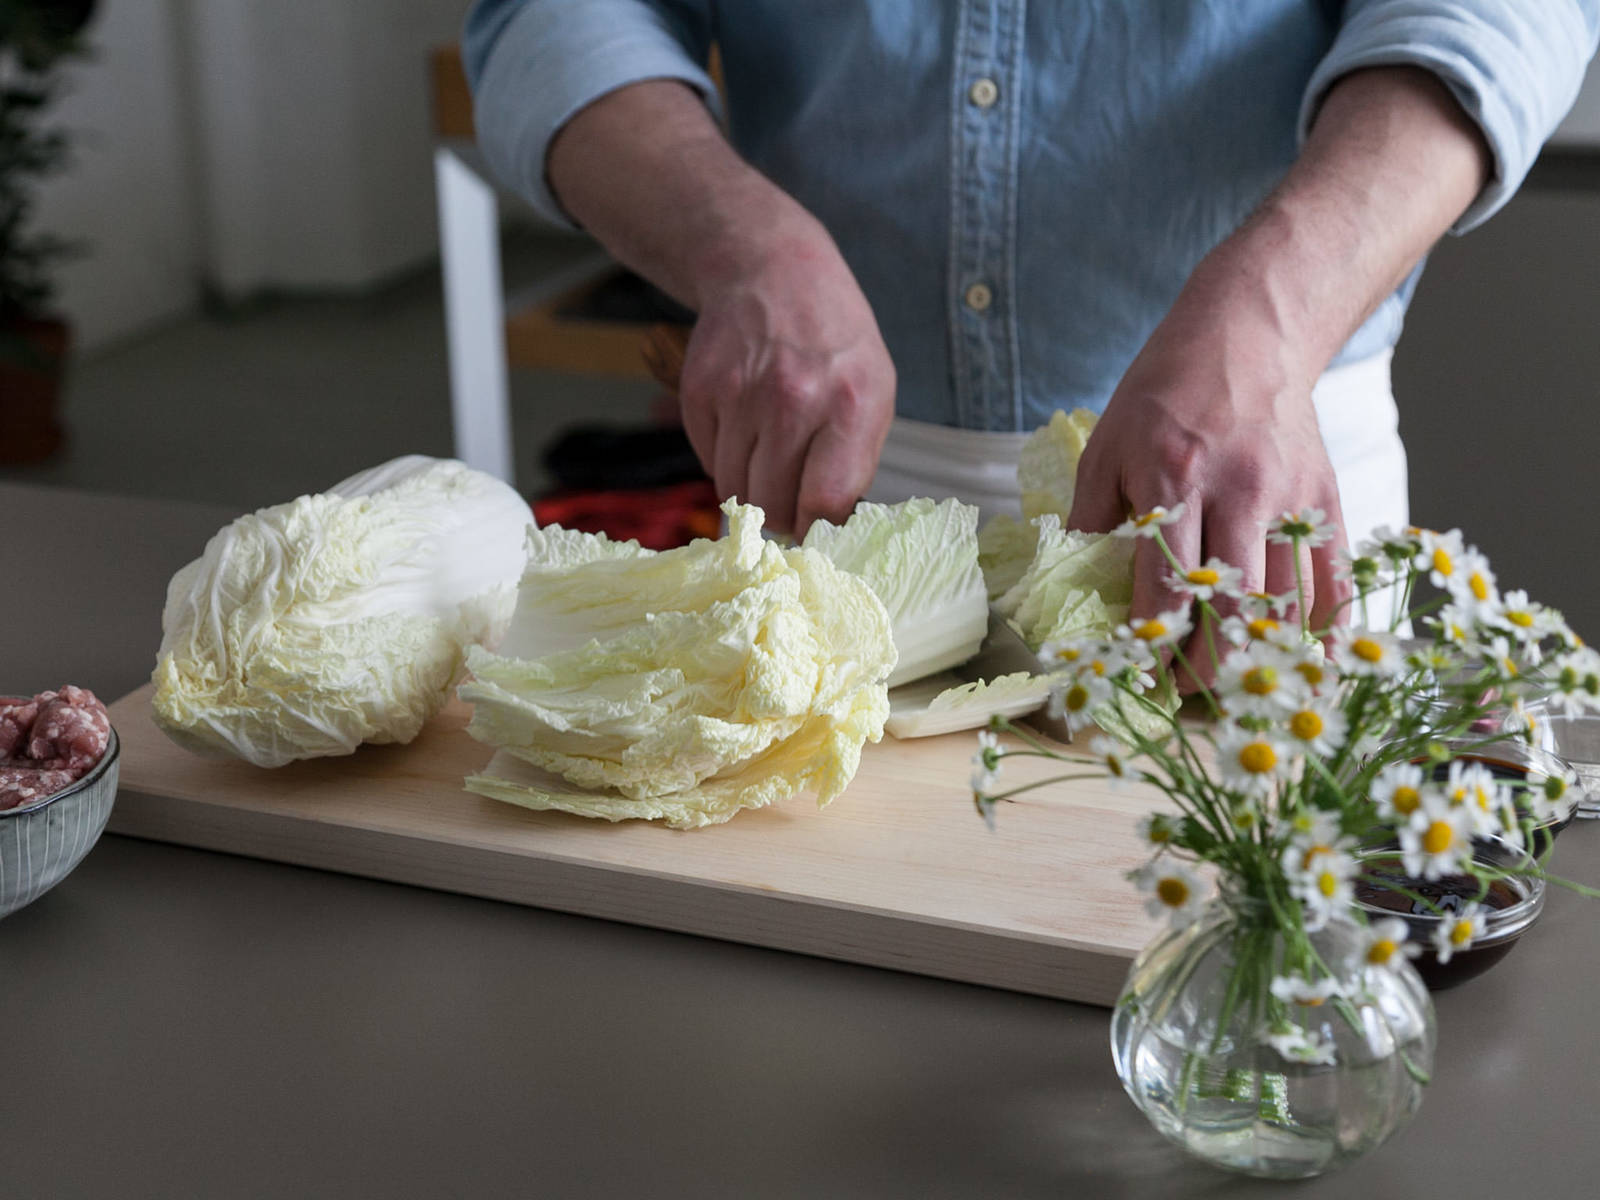 Peel and finely chop garlic, then set aside. Finely slice green onions and set aside, as well. Wash Chinese cabbage, cut off stem, and remove outer, dry leaves. According to serving size, remove some whole leaves for the cabbage rolls. Finely chop remaining inner leaves.